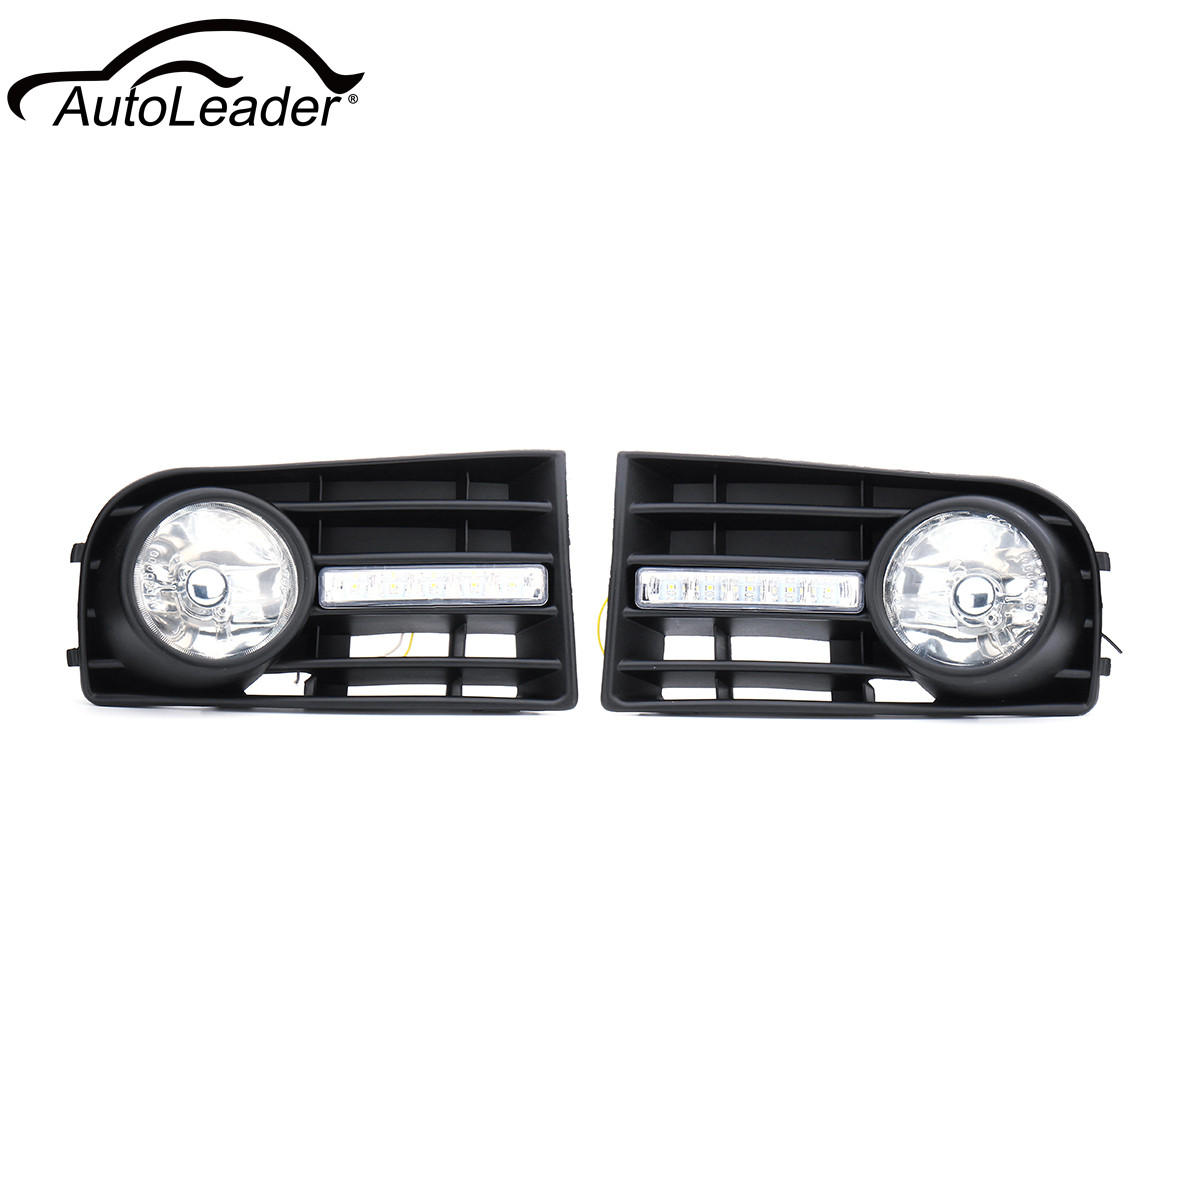 Pair Car Front DRL Fog Light Lamps Grilles + Wiring Harness Switch Fog Lamp For VW Golf 5 2006-2009 Yellow Light for opel astra h gtc 2005 15 h11 wiring harness sockets wire connector switch 2 fog lights drl front bumper 5d lens led lamp